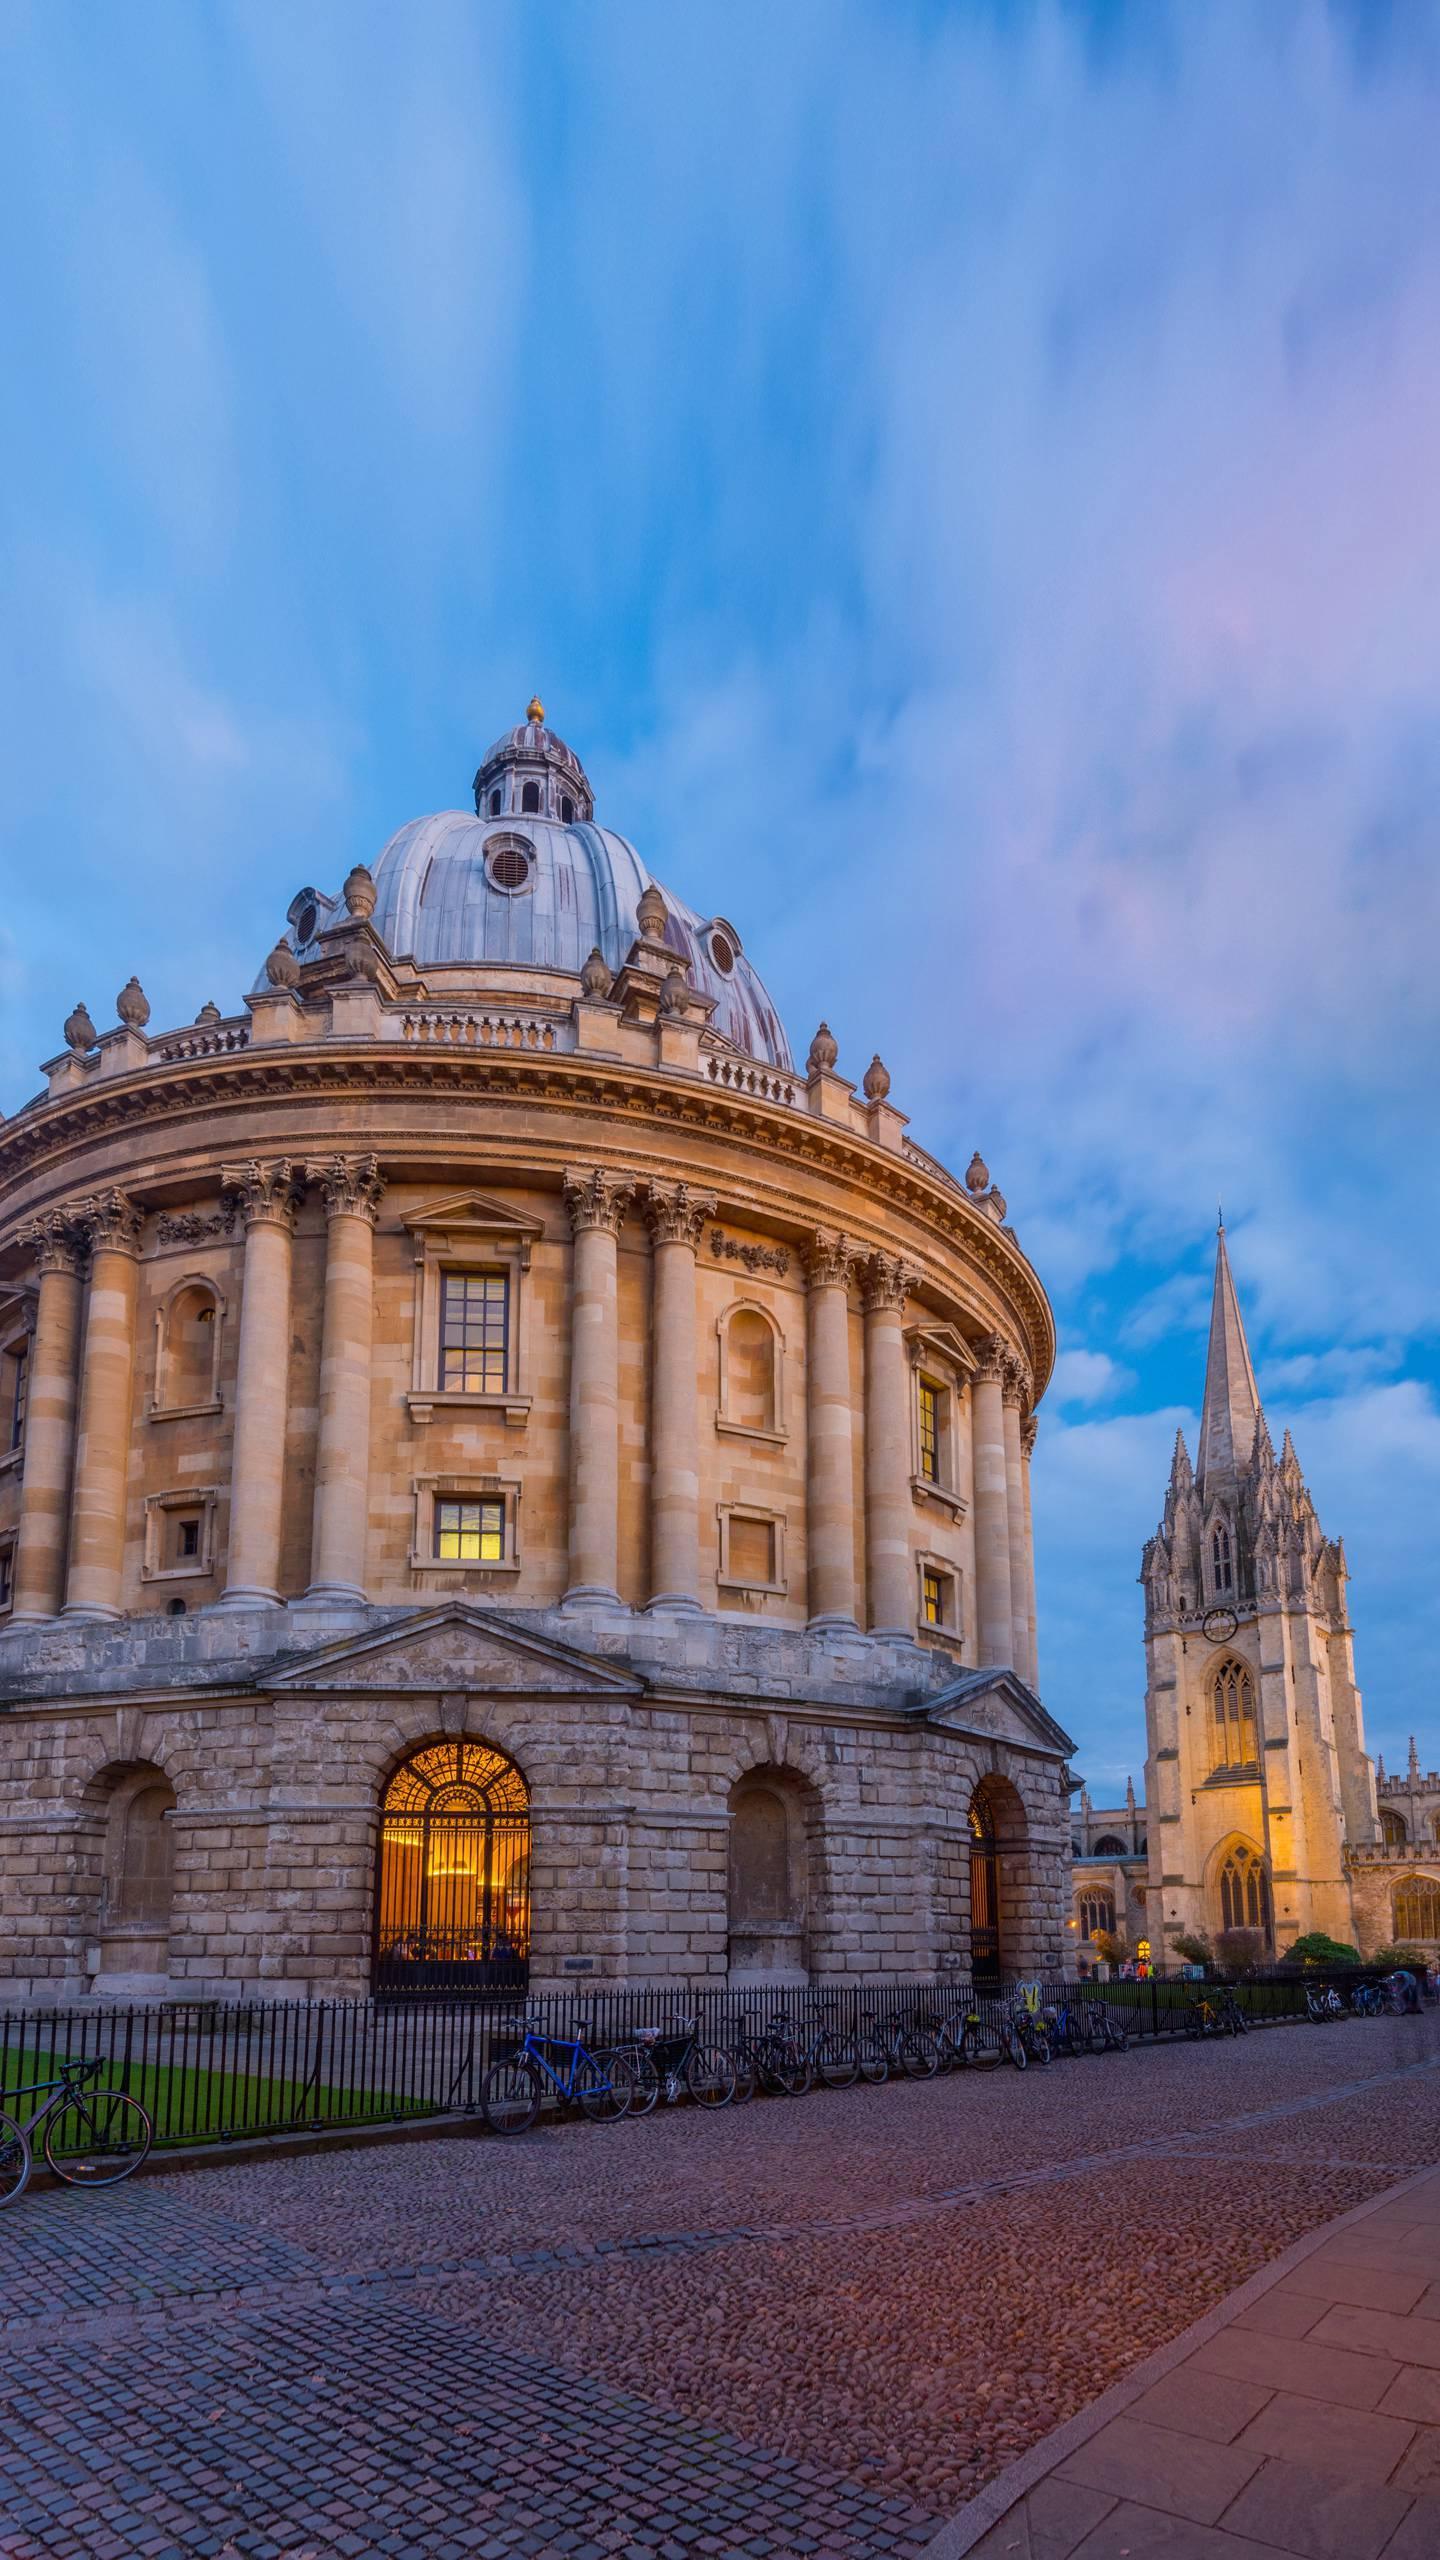 Britain - Oxford. Oxford is the main reason why many people come to visit Oxford. It has produced many outstanding people around the world.